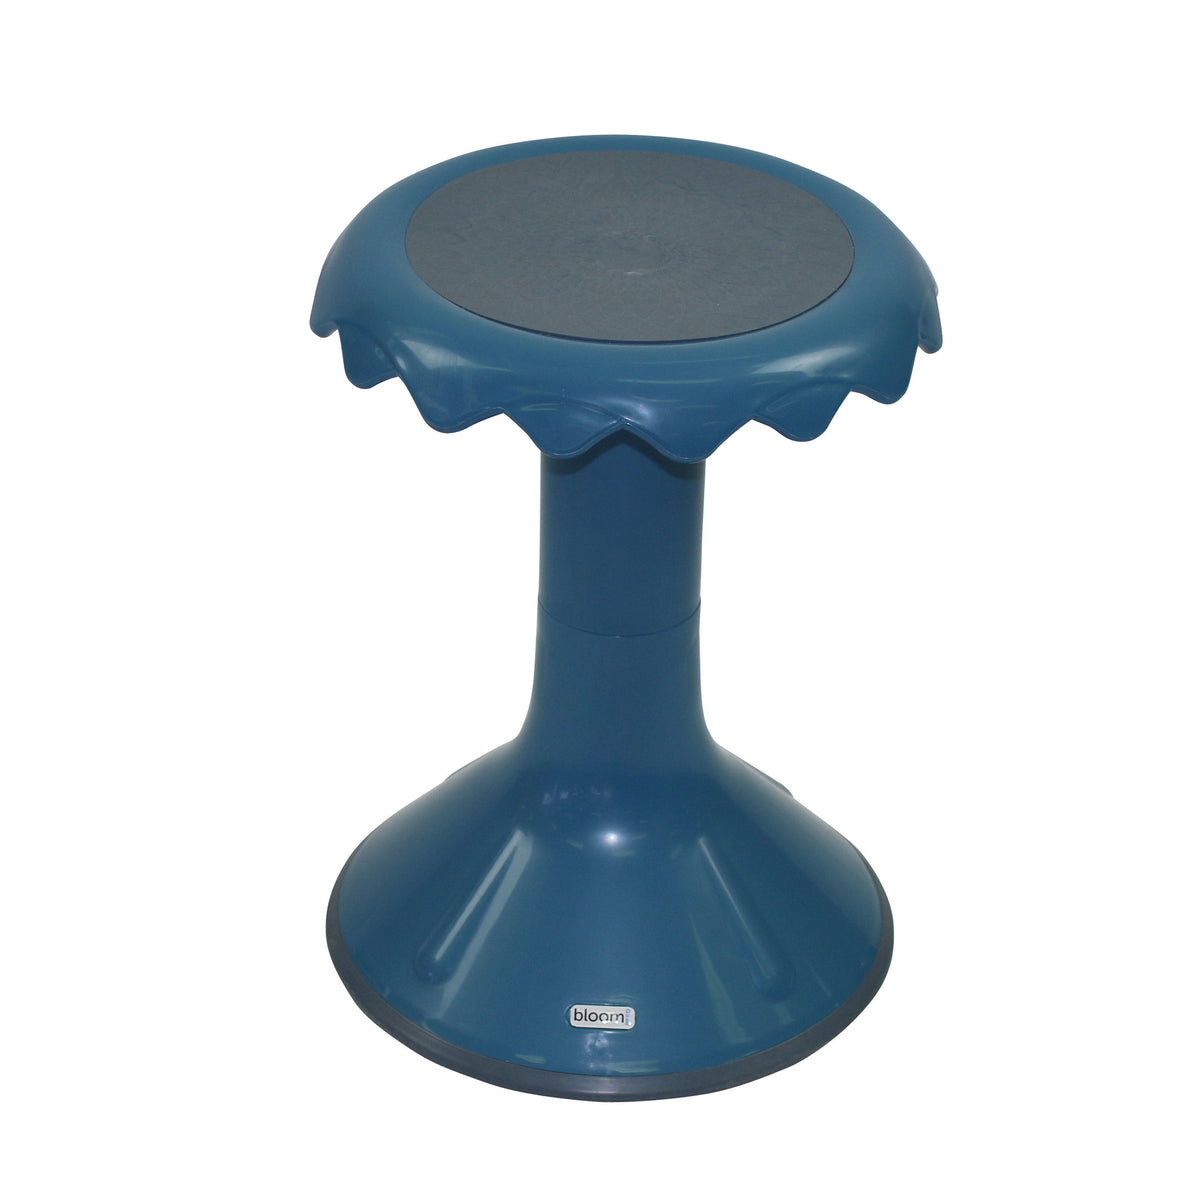 Bloom Stool